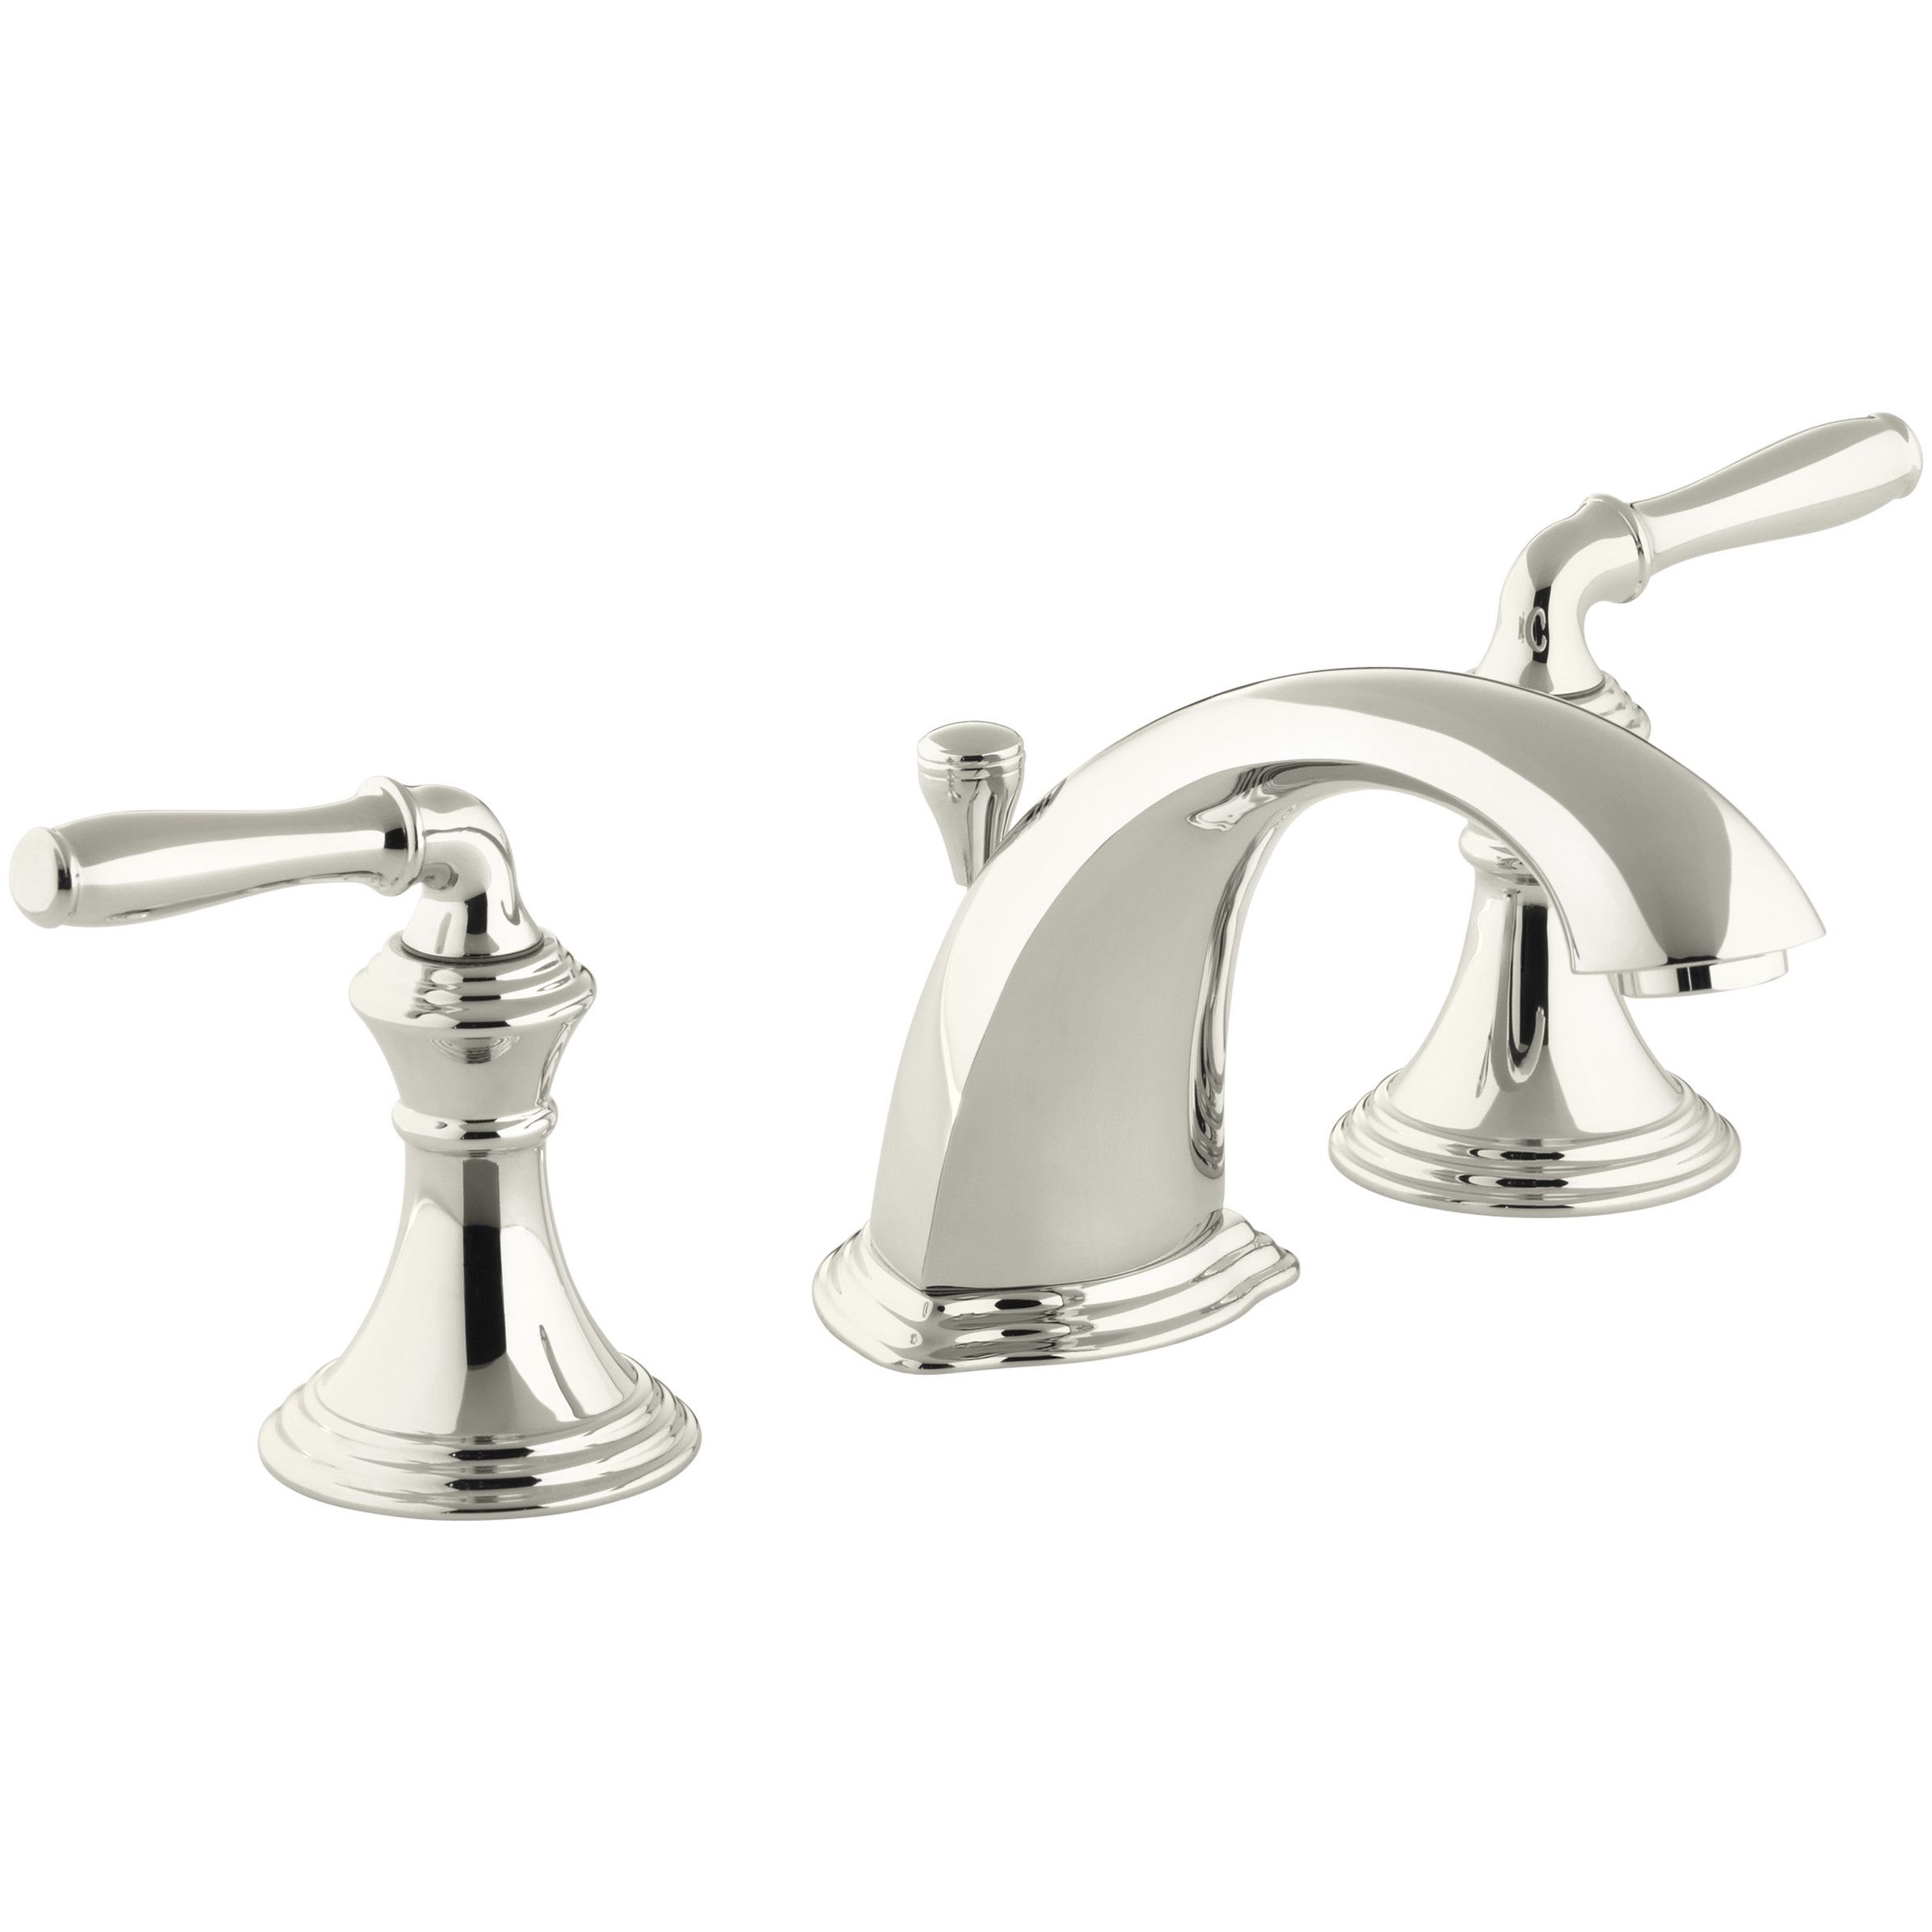 Devonshire Standard Bathroom Faucet with Drain Assembly | Faucet and ...